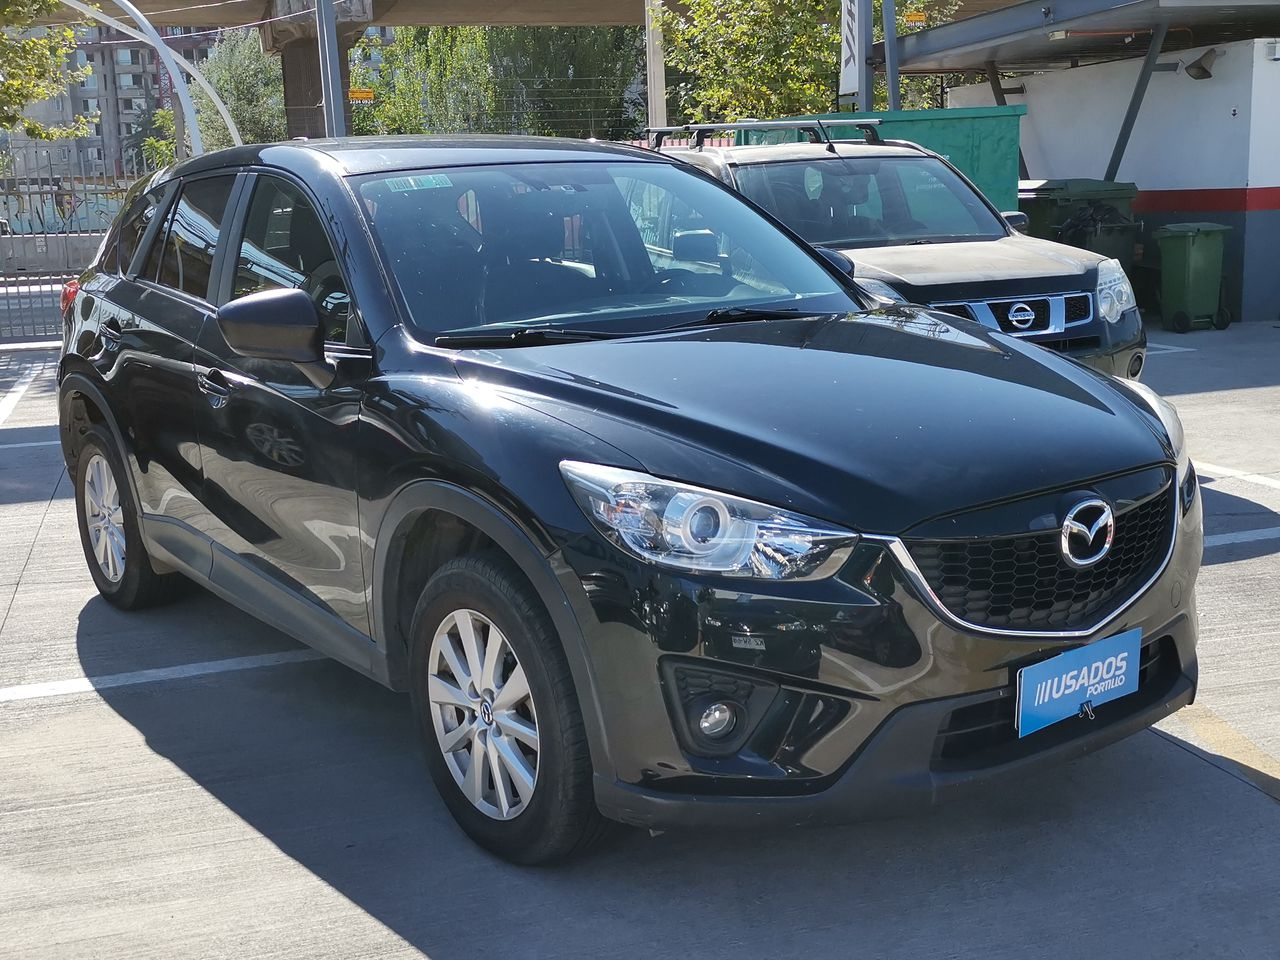 Mazda Cx 5 R 2.0 At 2013  Usado en Automotriz Portillo